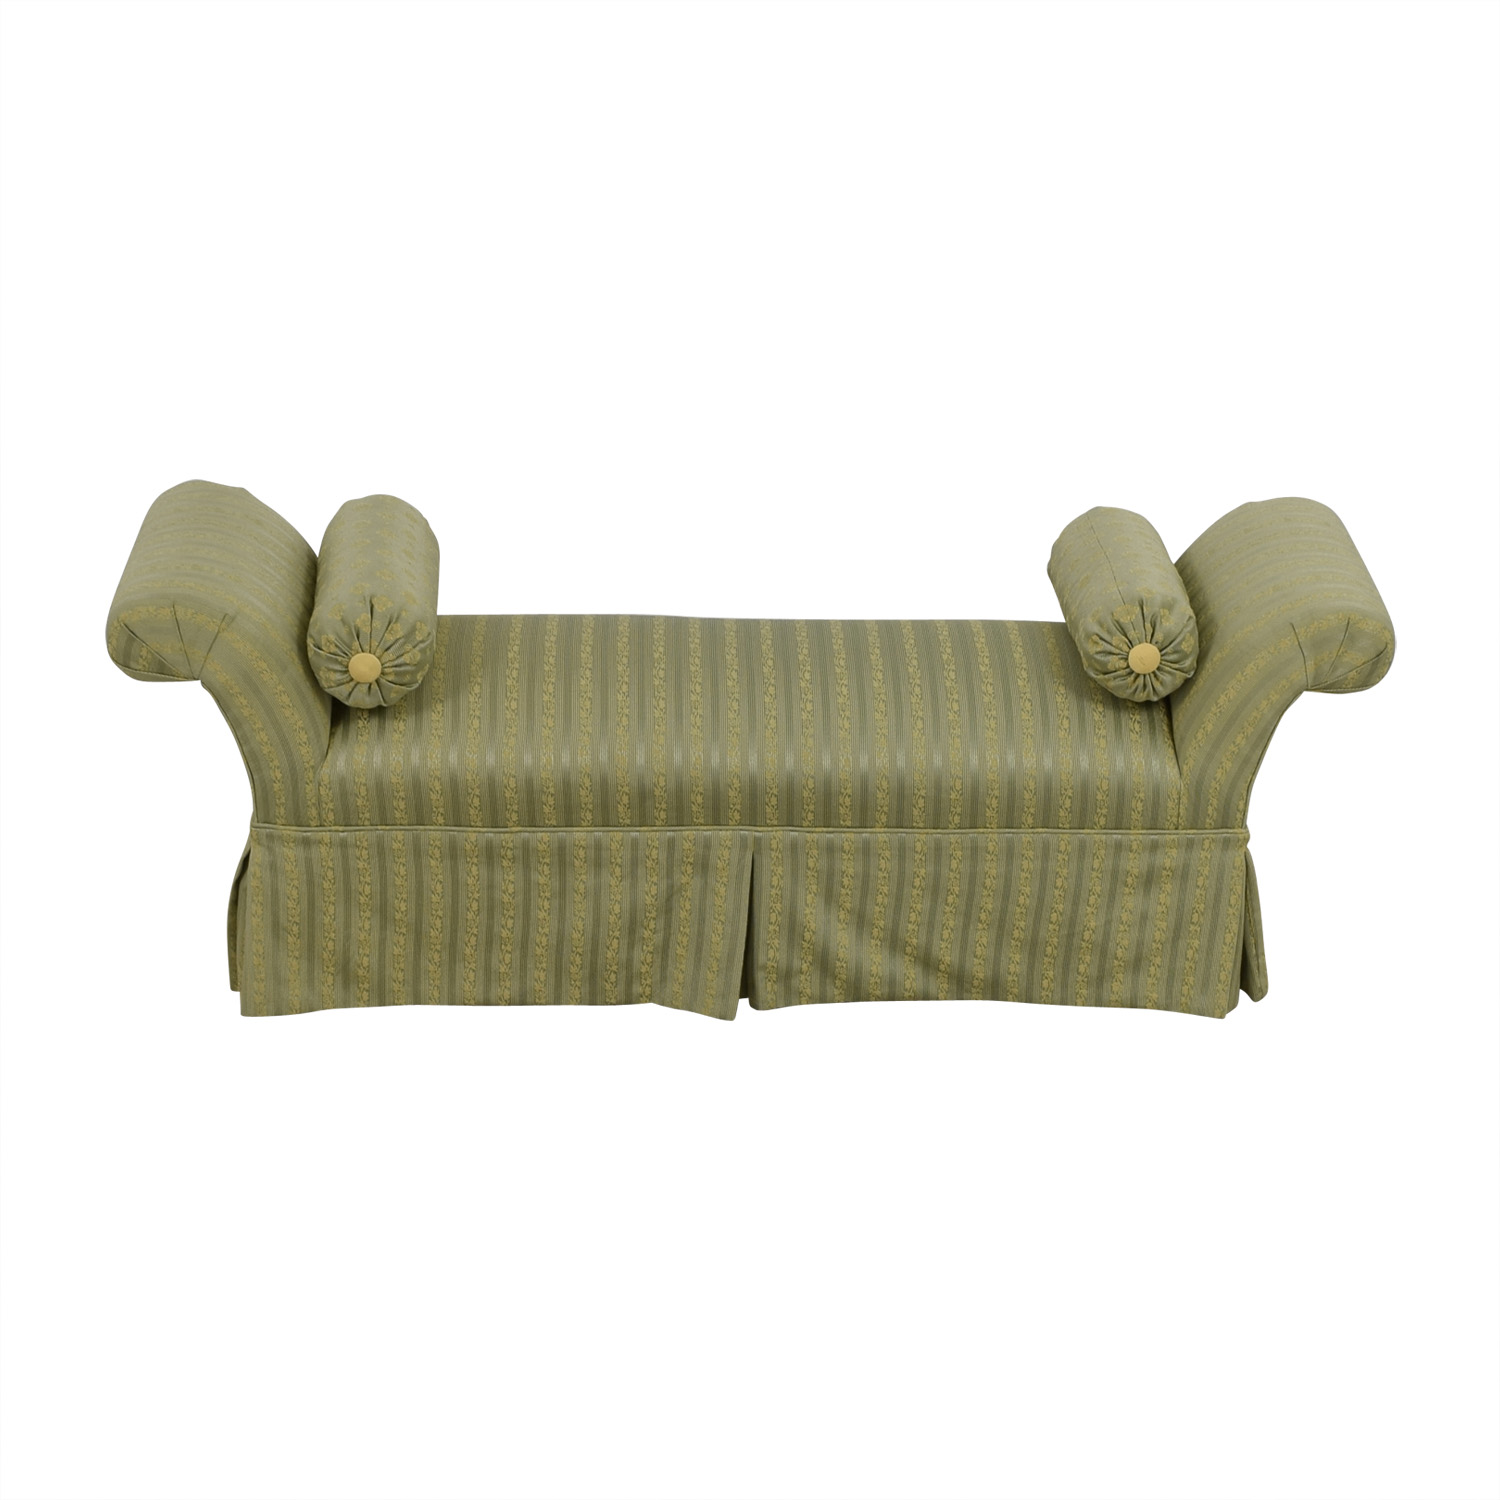 Two Toned Green Skirted Bedroom Bench with Neck Roll Pillows used